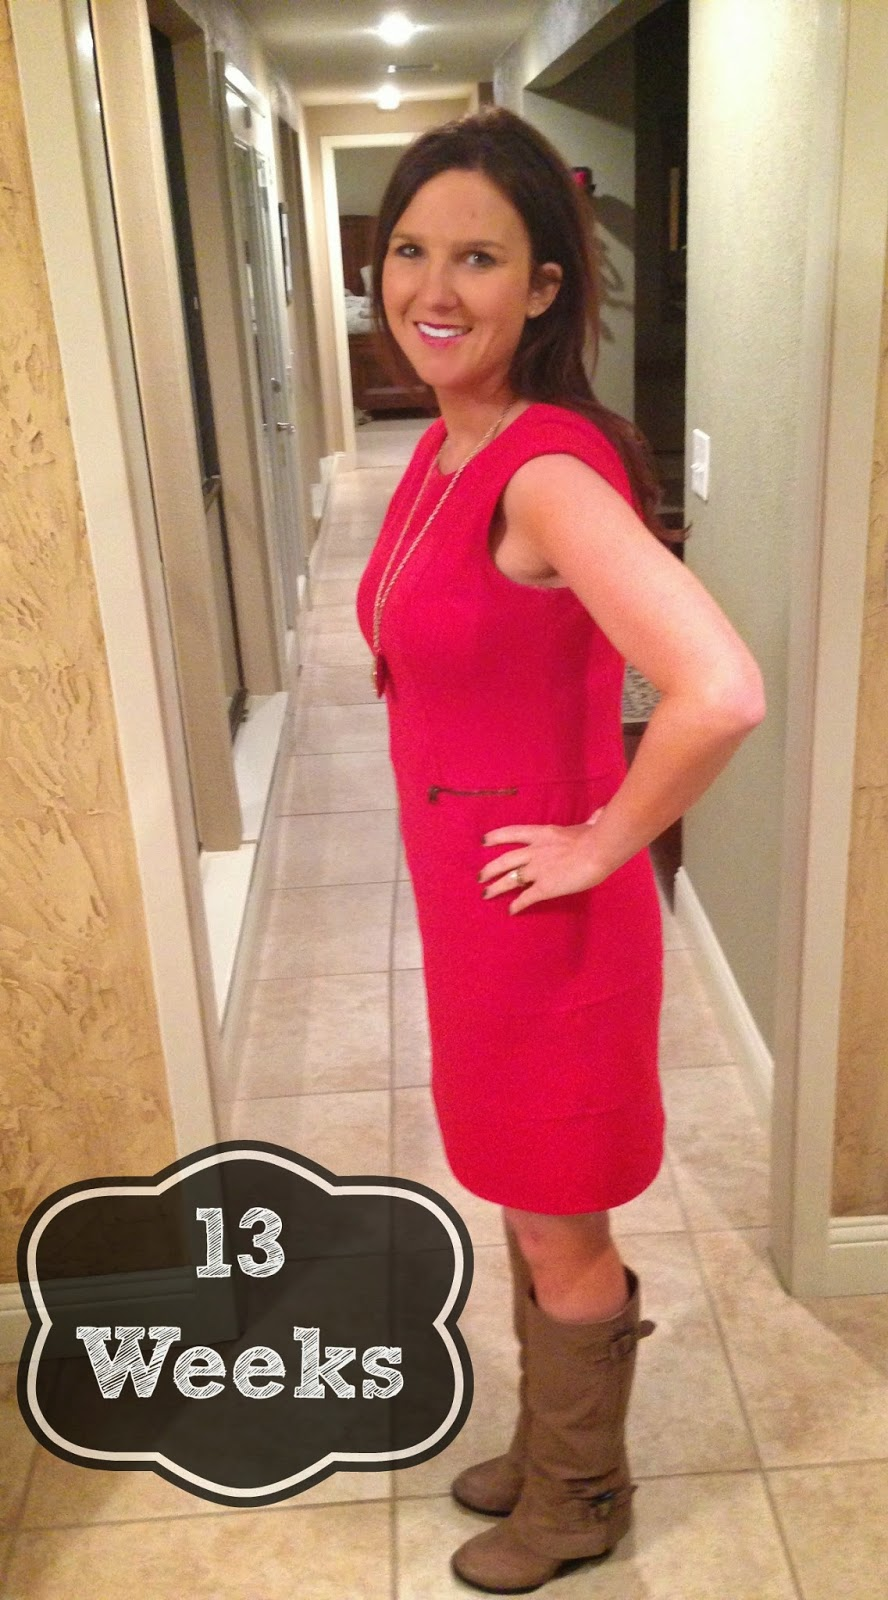 13 Weeks – The Maternity Gallery